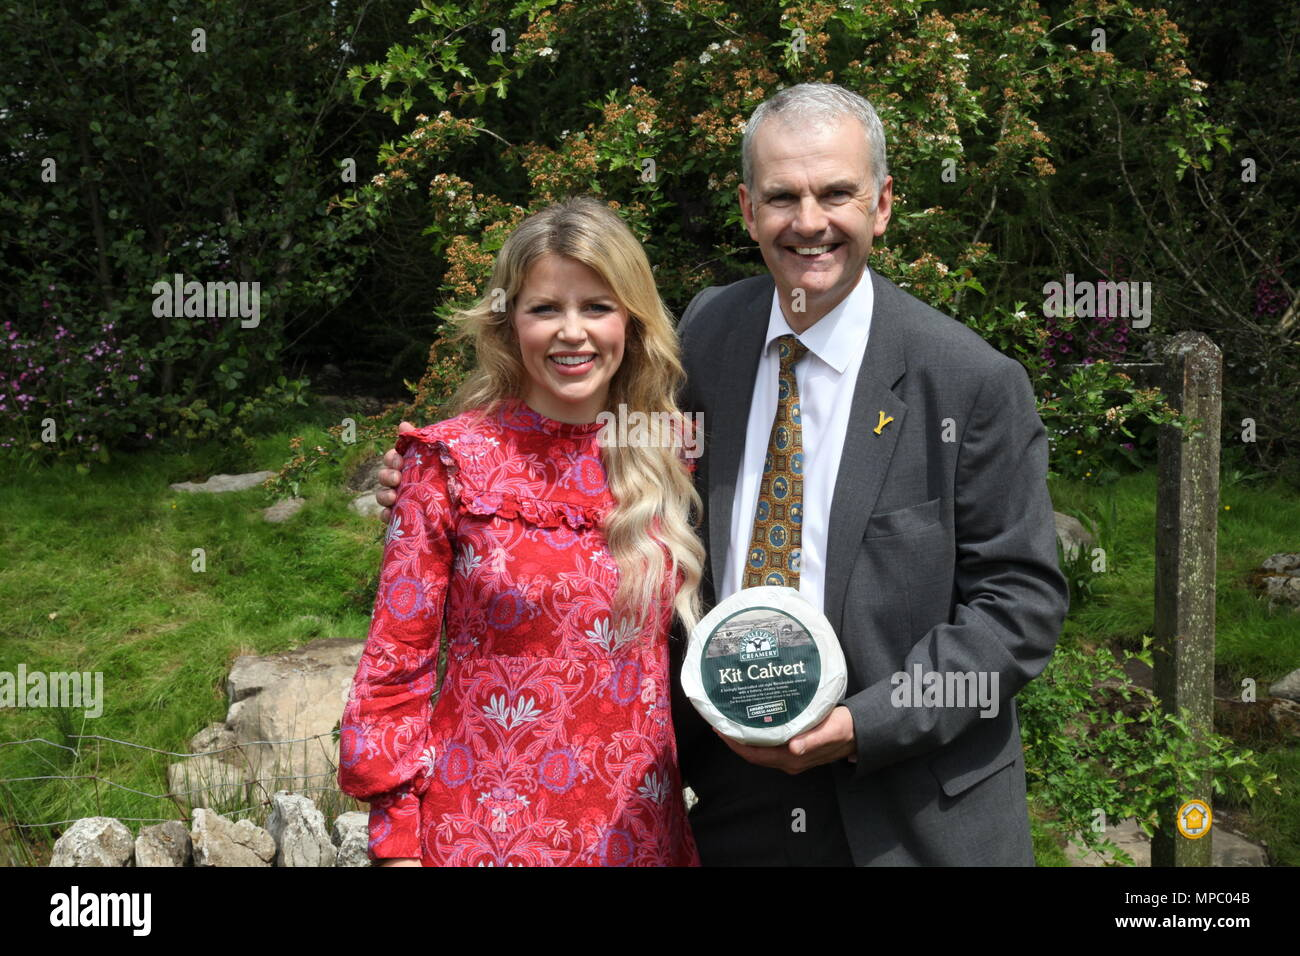 Chelsea, London, UK. 21st May, 2018. David Hartley Managing Director of Wensleydale Creamery and Ellie Harrison on the Welcome to Yorkshire garden at Chelsea Flower Show 2018, designed by Mark Gregory for Landformconsultants.co.uk Credit: Jenny Lilly/Alamy Live News - Stock Image